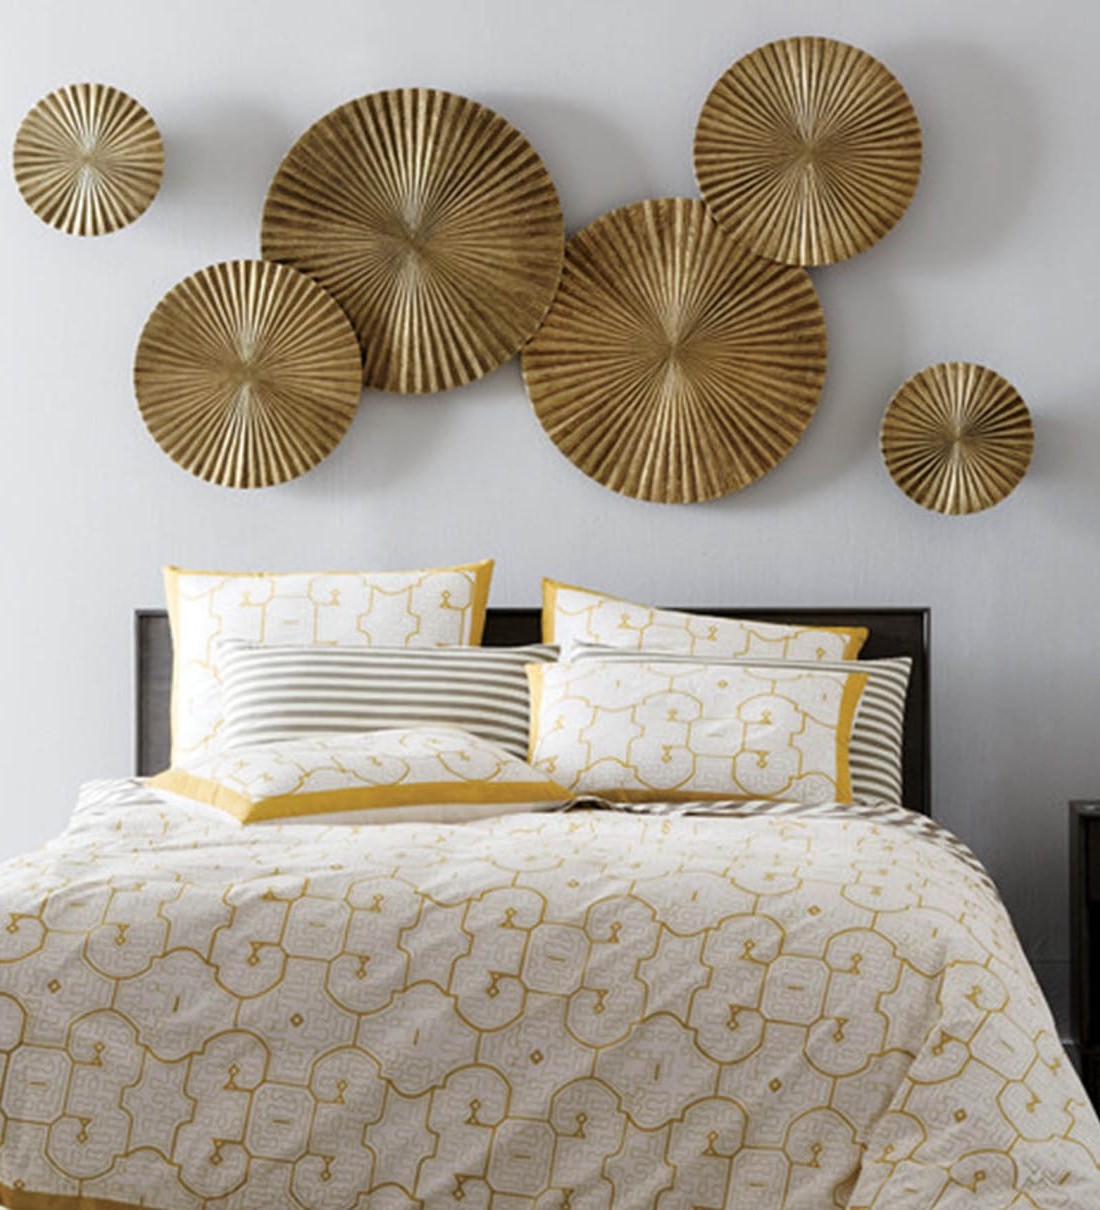 Fashionable Starburst Wall Décor By Wrought Studio Regarding Wrought Iron Decorative In Golden Wall Art (View 15 of 20)